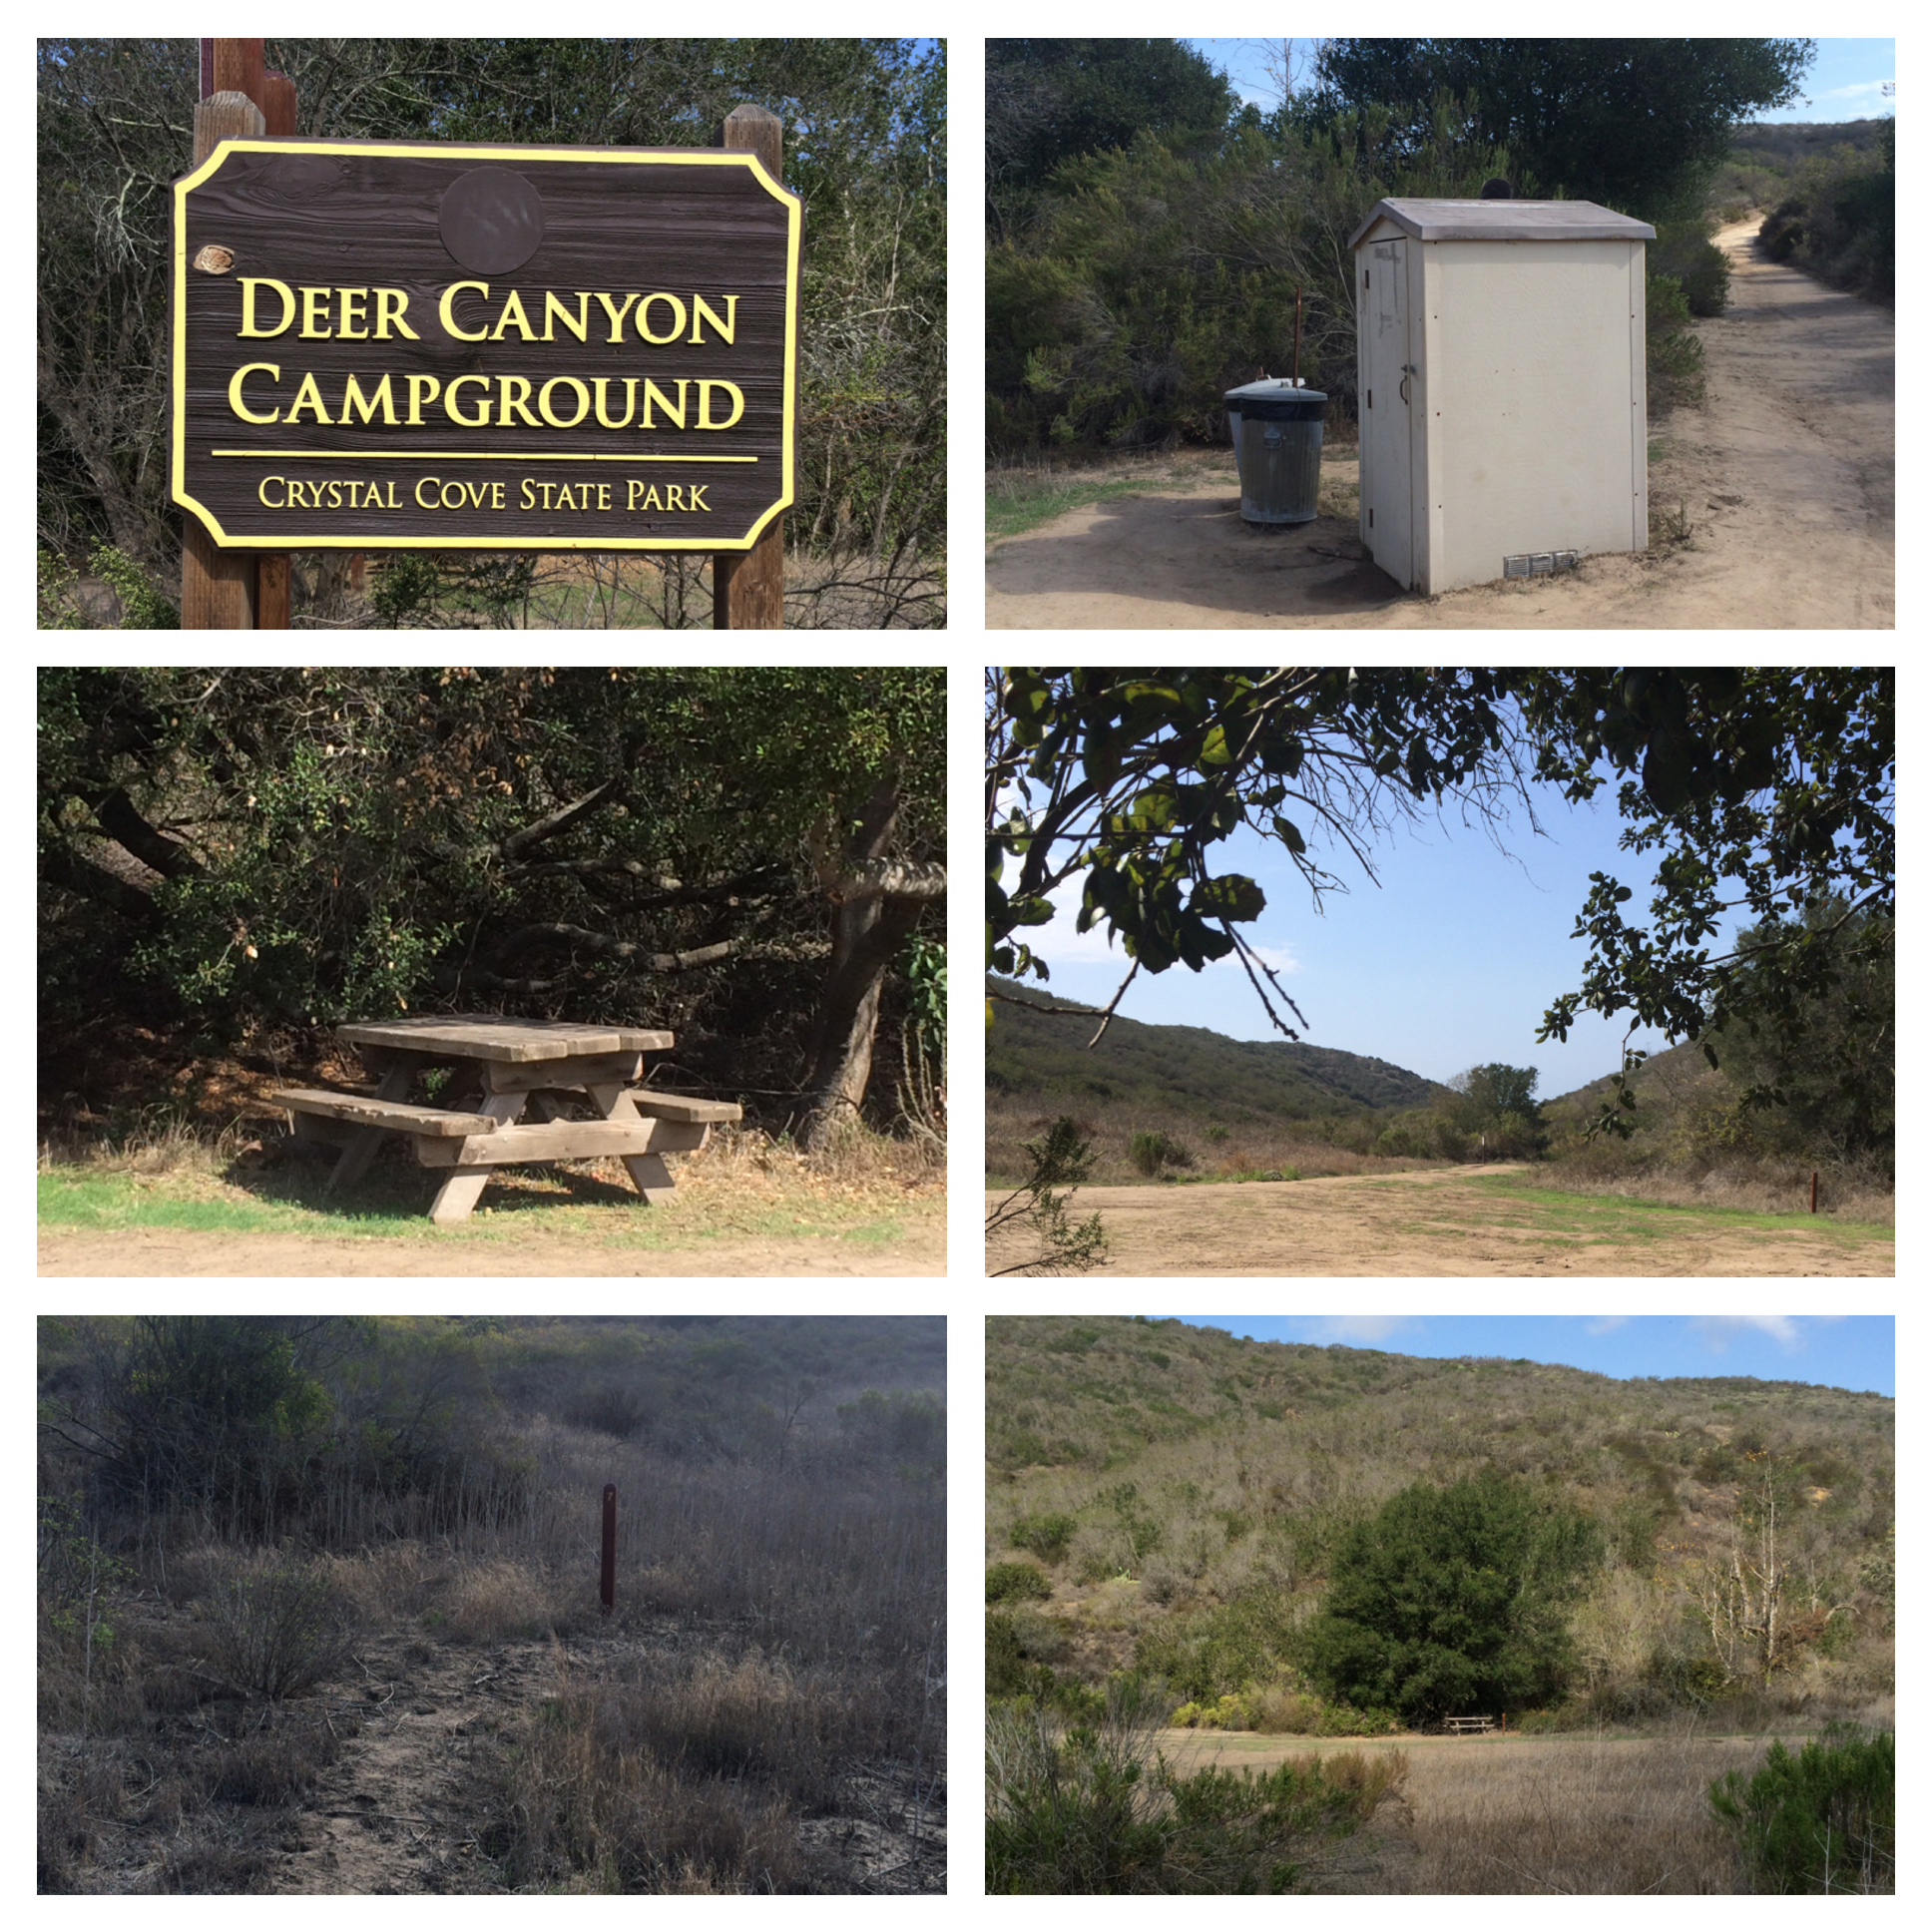 Camping in the backcountry crystal cove get in touch crystal cove state park nvjuhfo Image collections